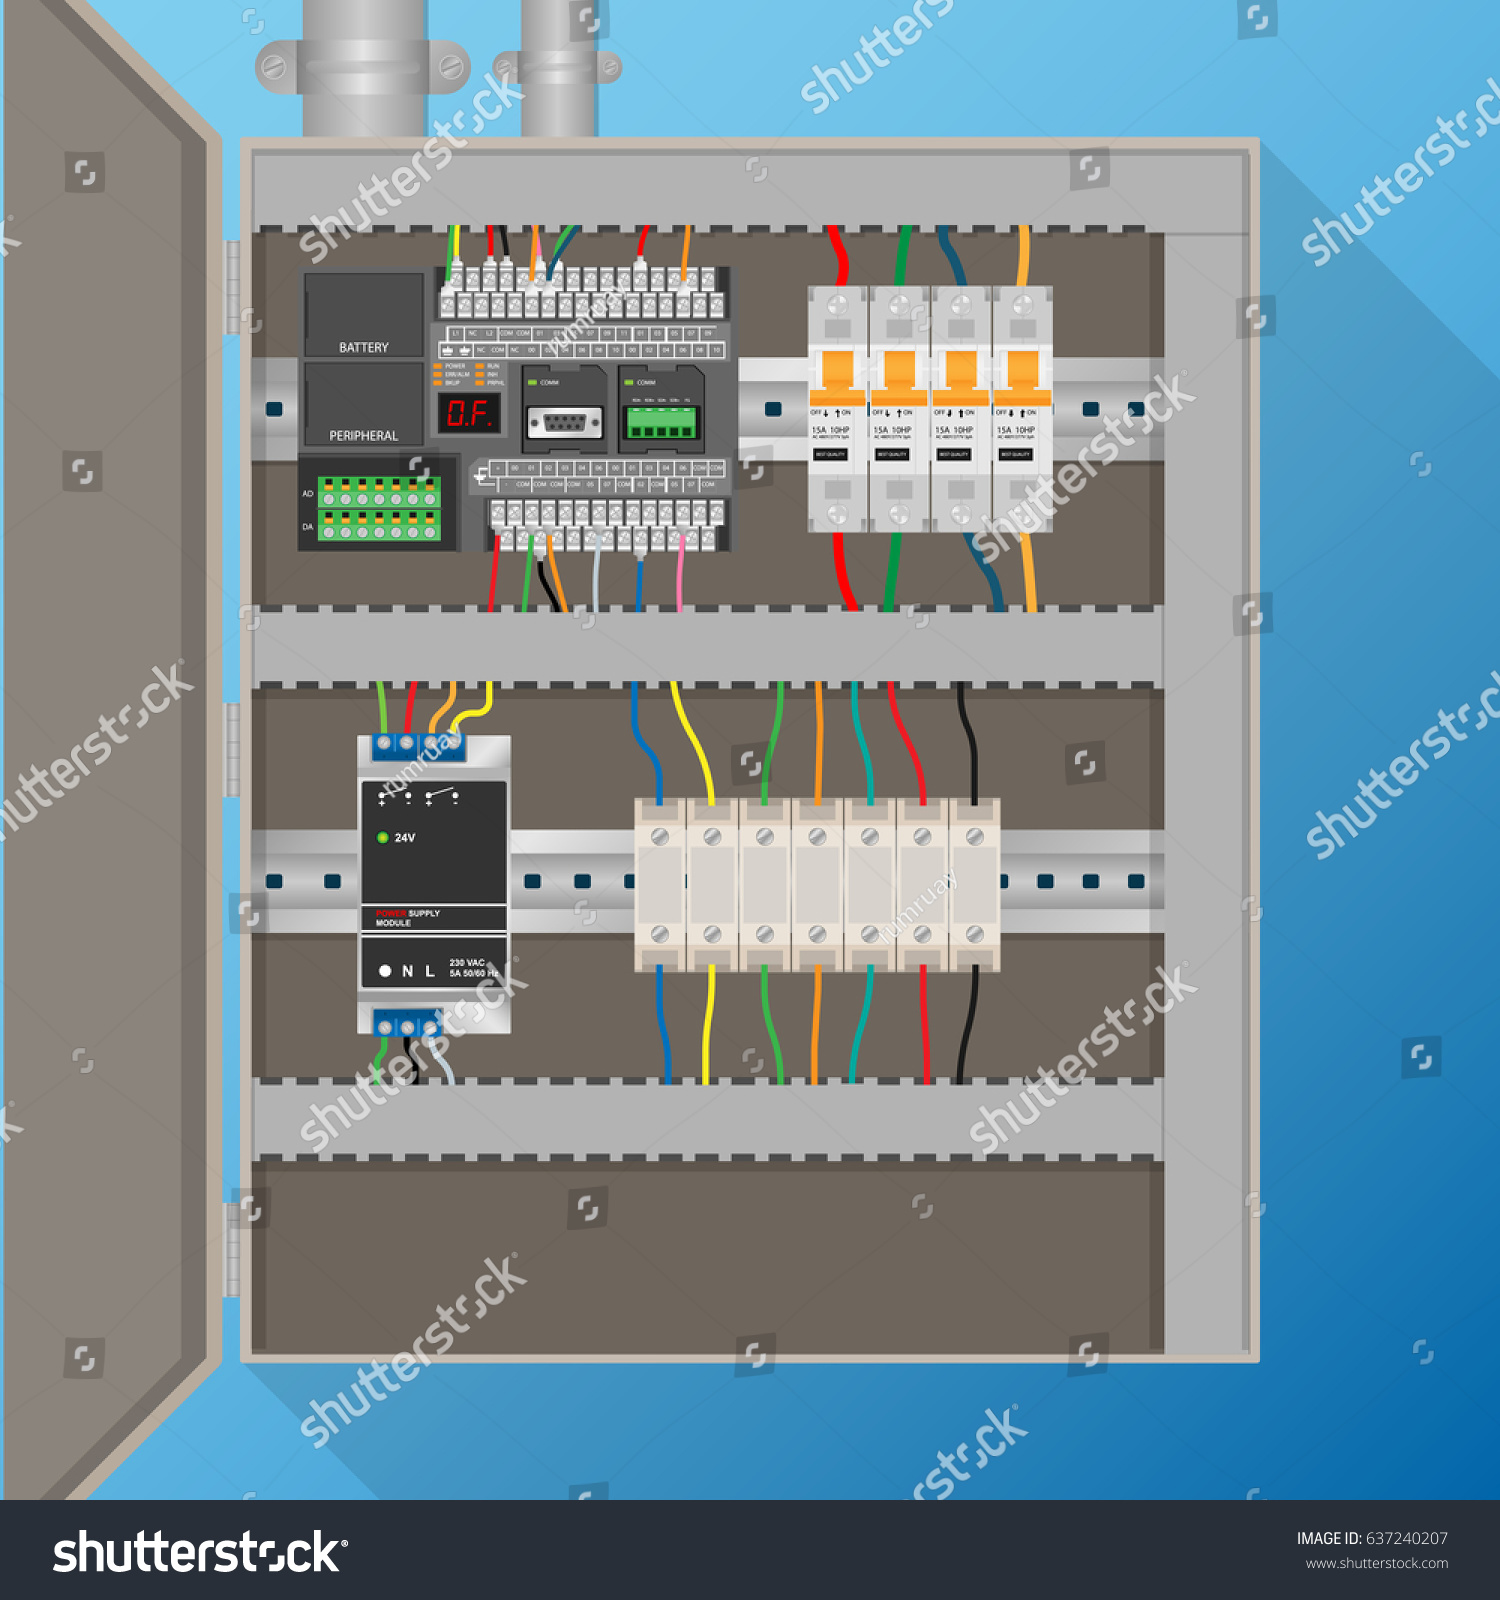 Plc Control System Electric Cabinet Stock Vector 637240207 ...